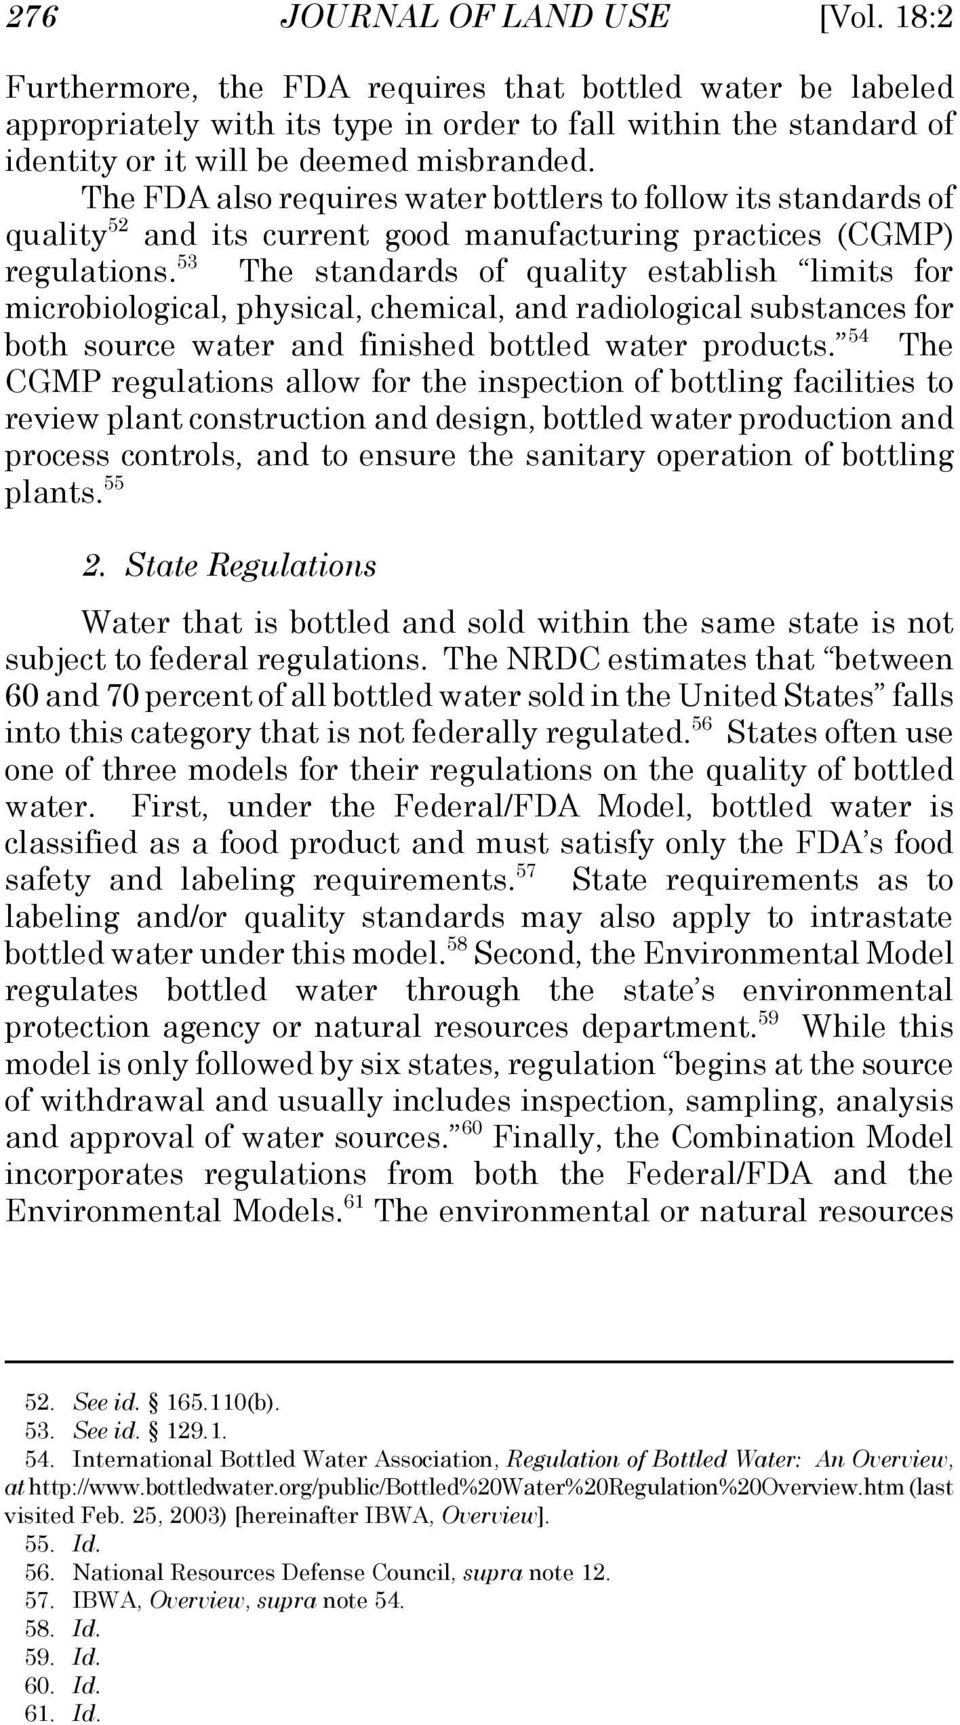 The FDA also requires water bottlers to follow its standards of quality 52 and its current good manufacturing practices (CGMP) regulations.